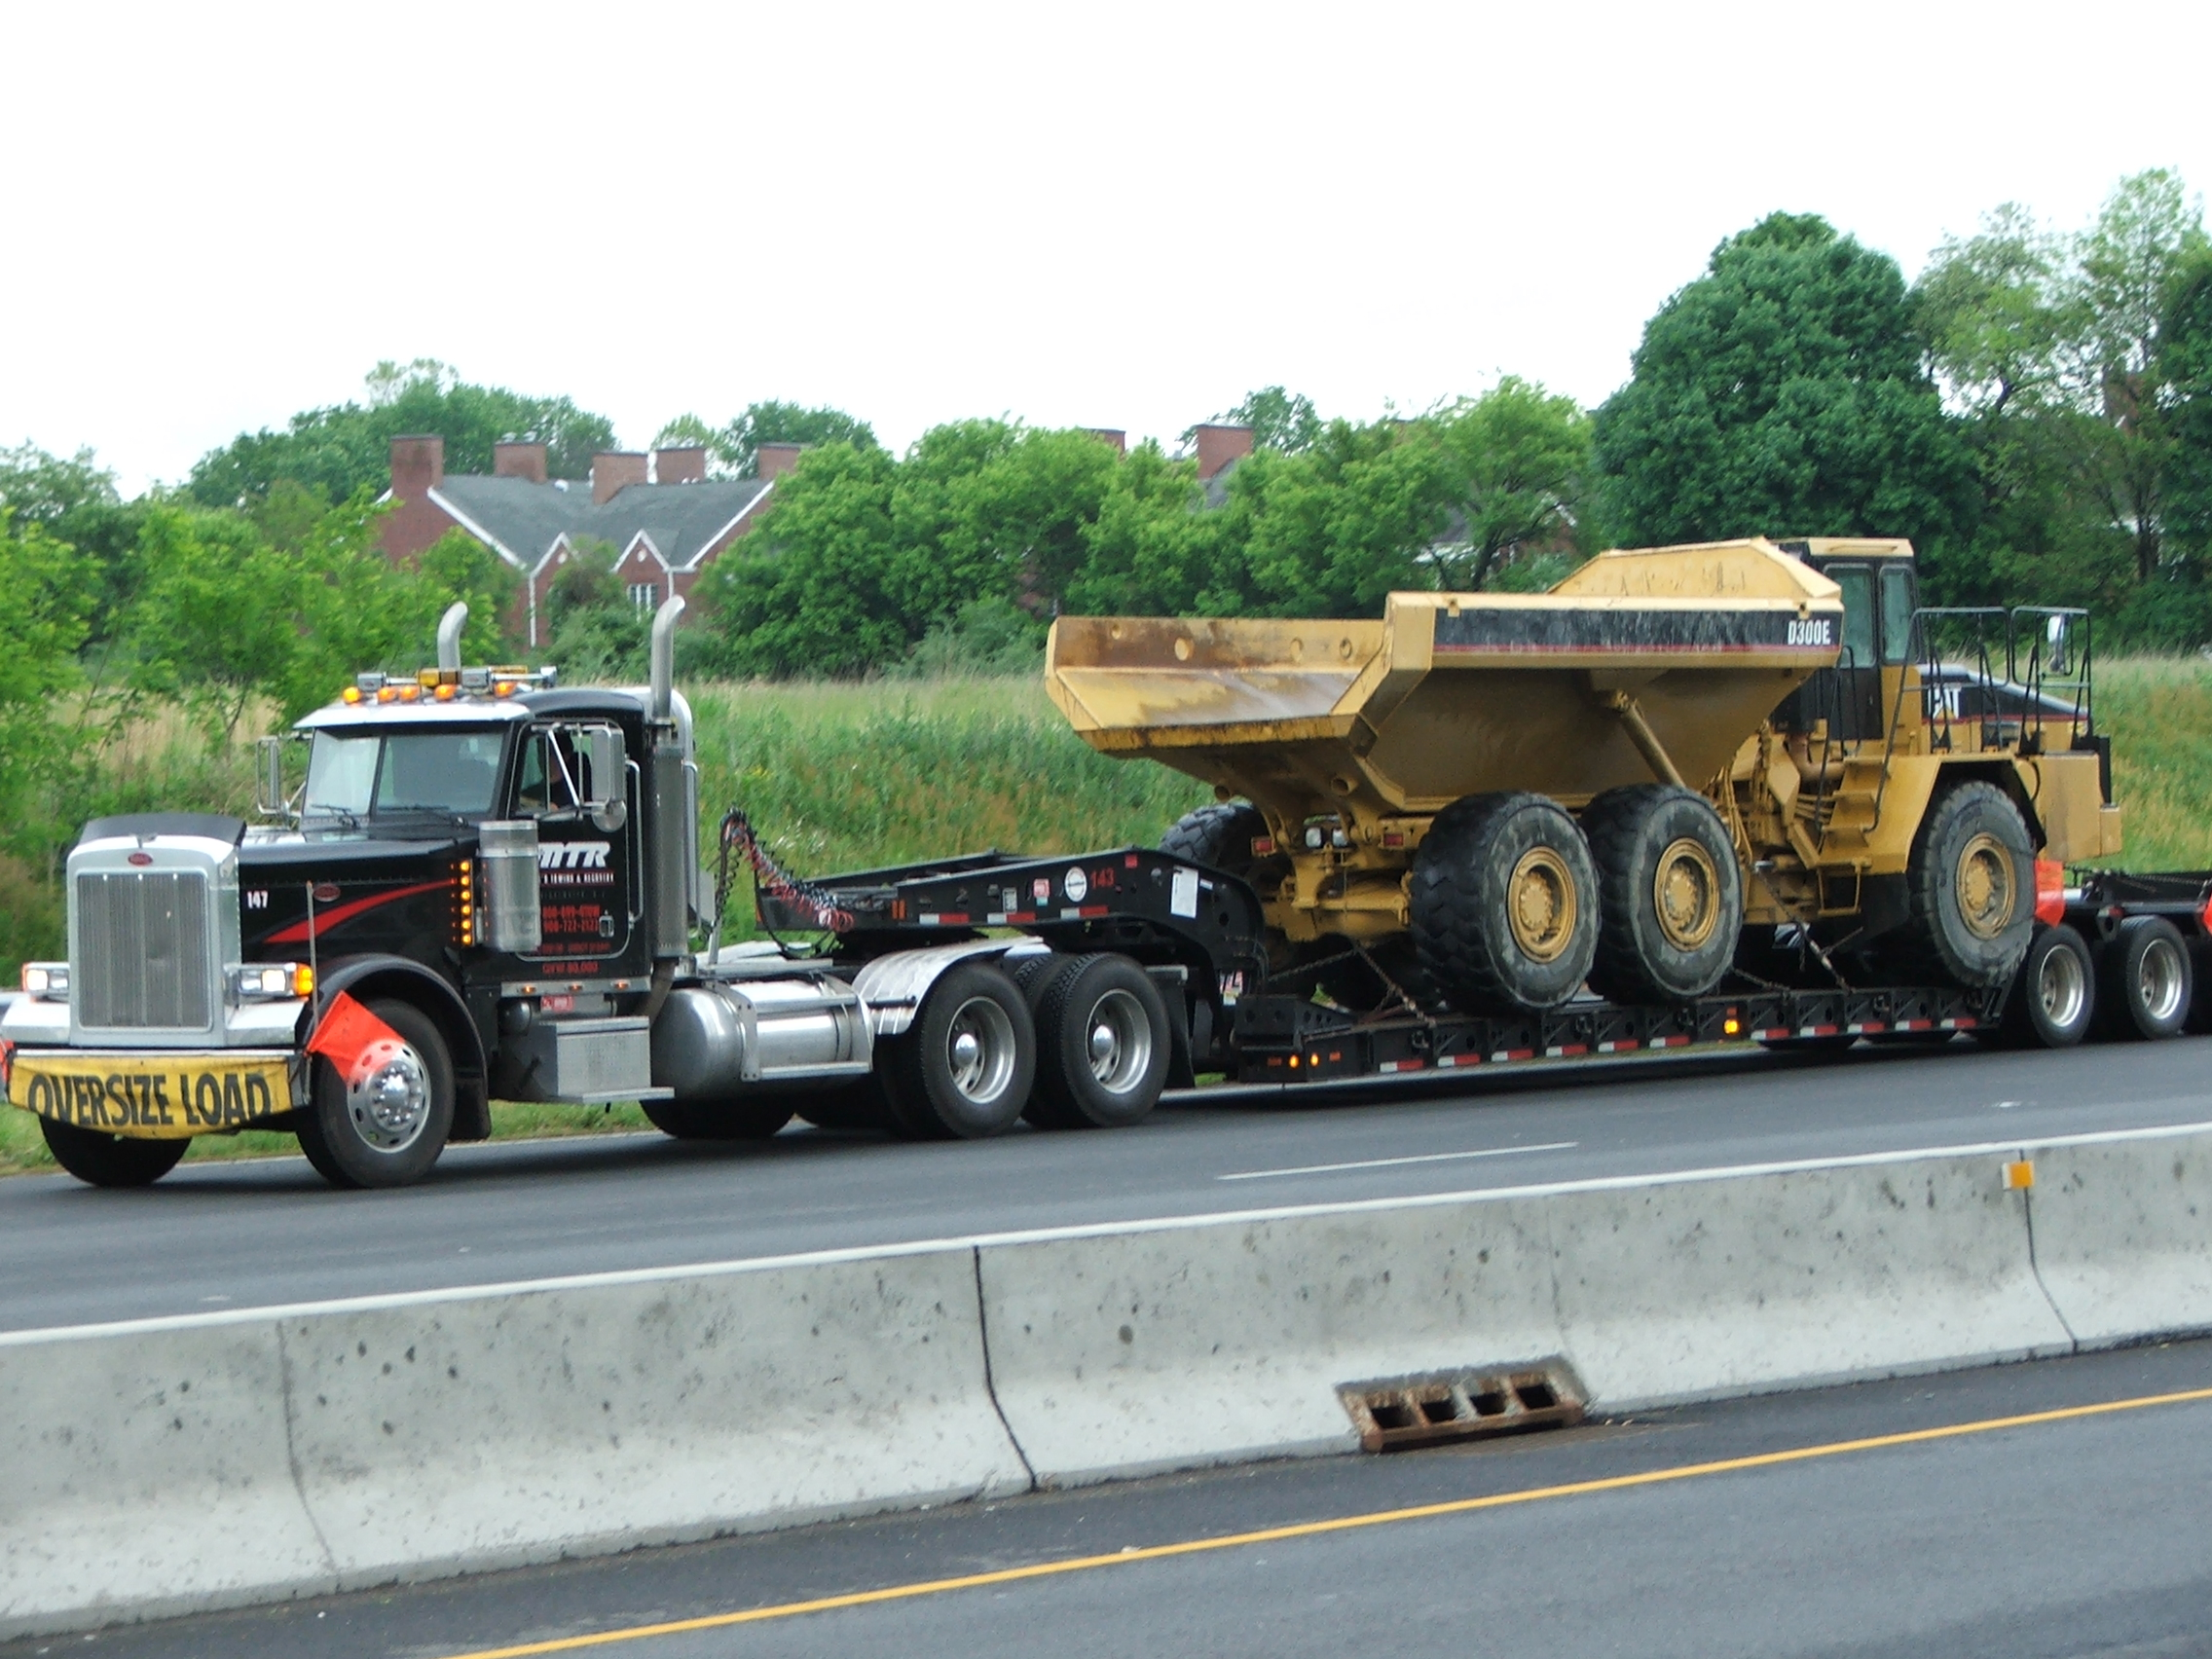 Mike's Towing & Recovery image 23